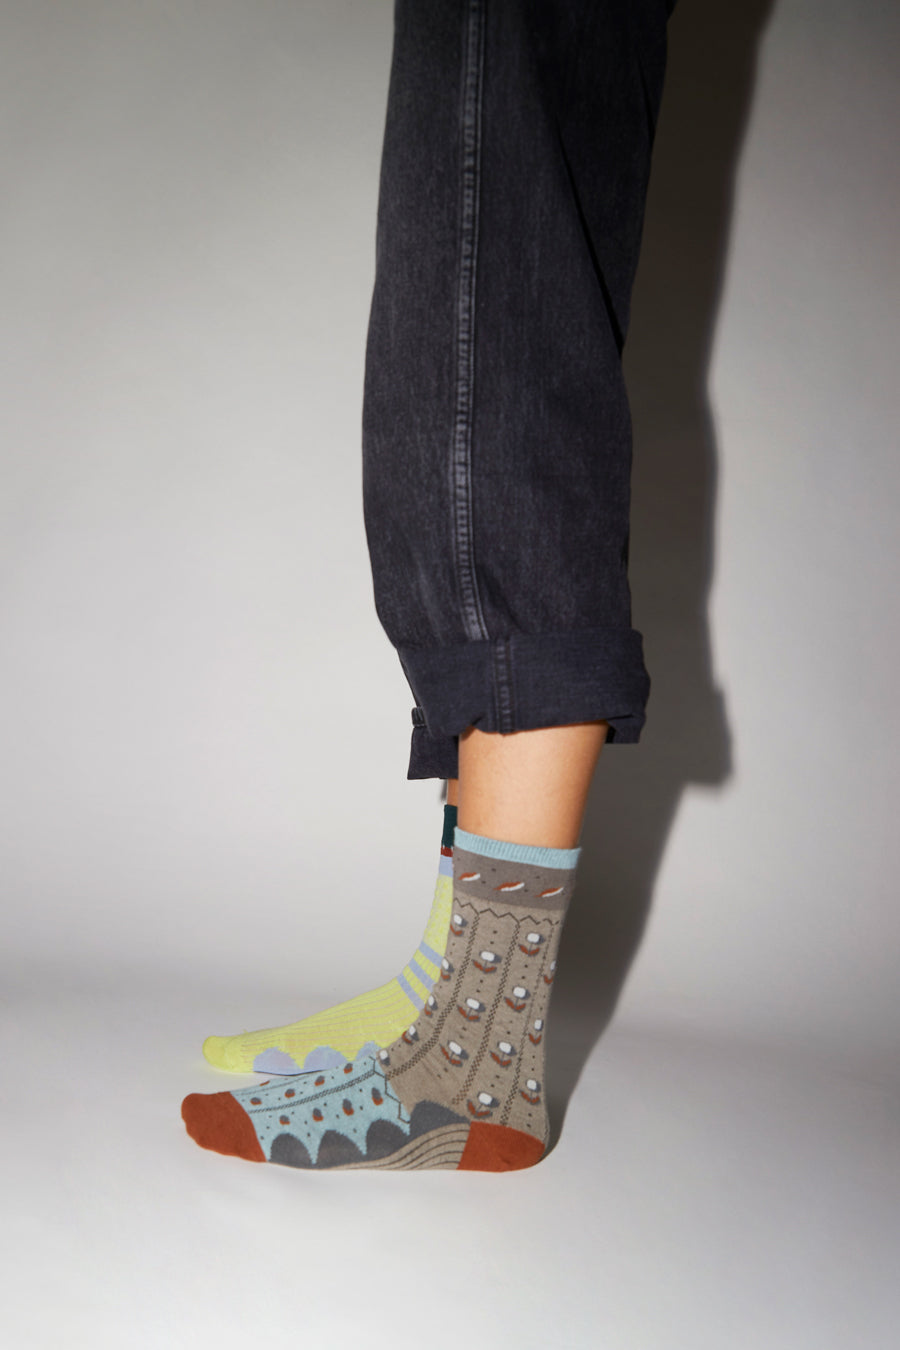 Exquisite J Tulip Socks in Grey